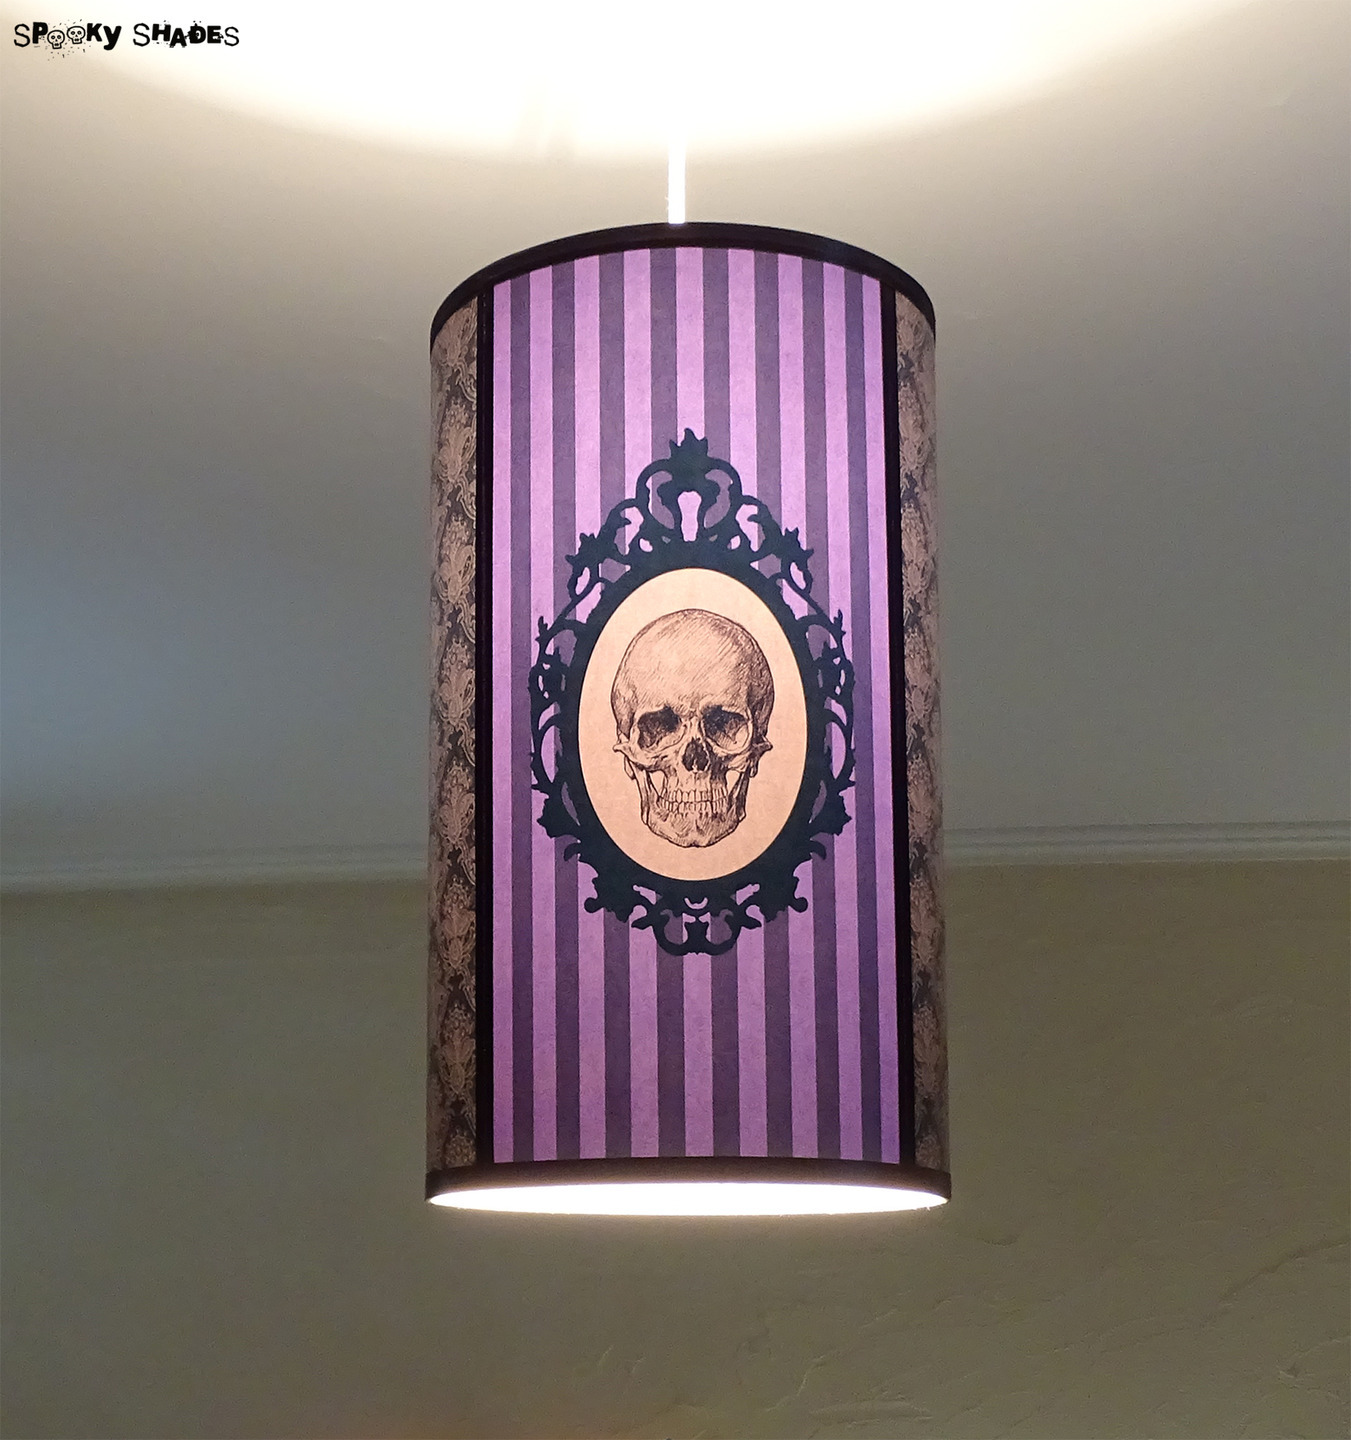 lampe suspension violette style baroque gothique